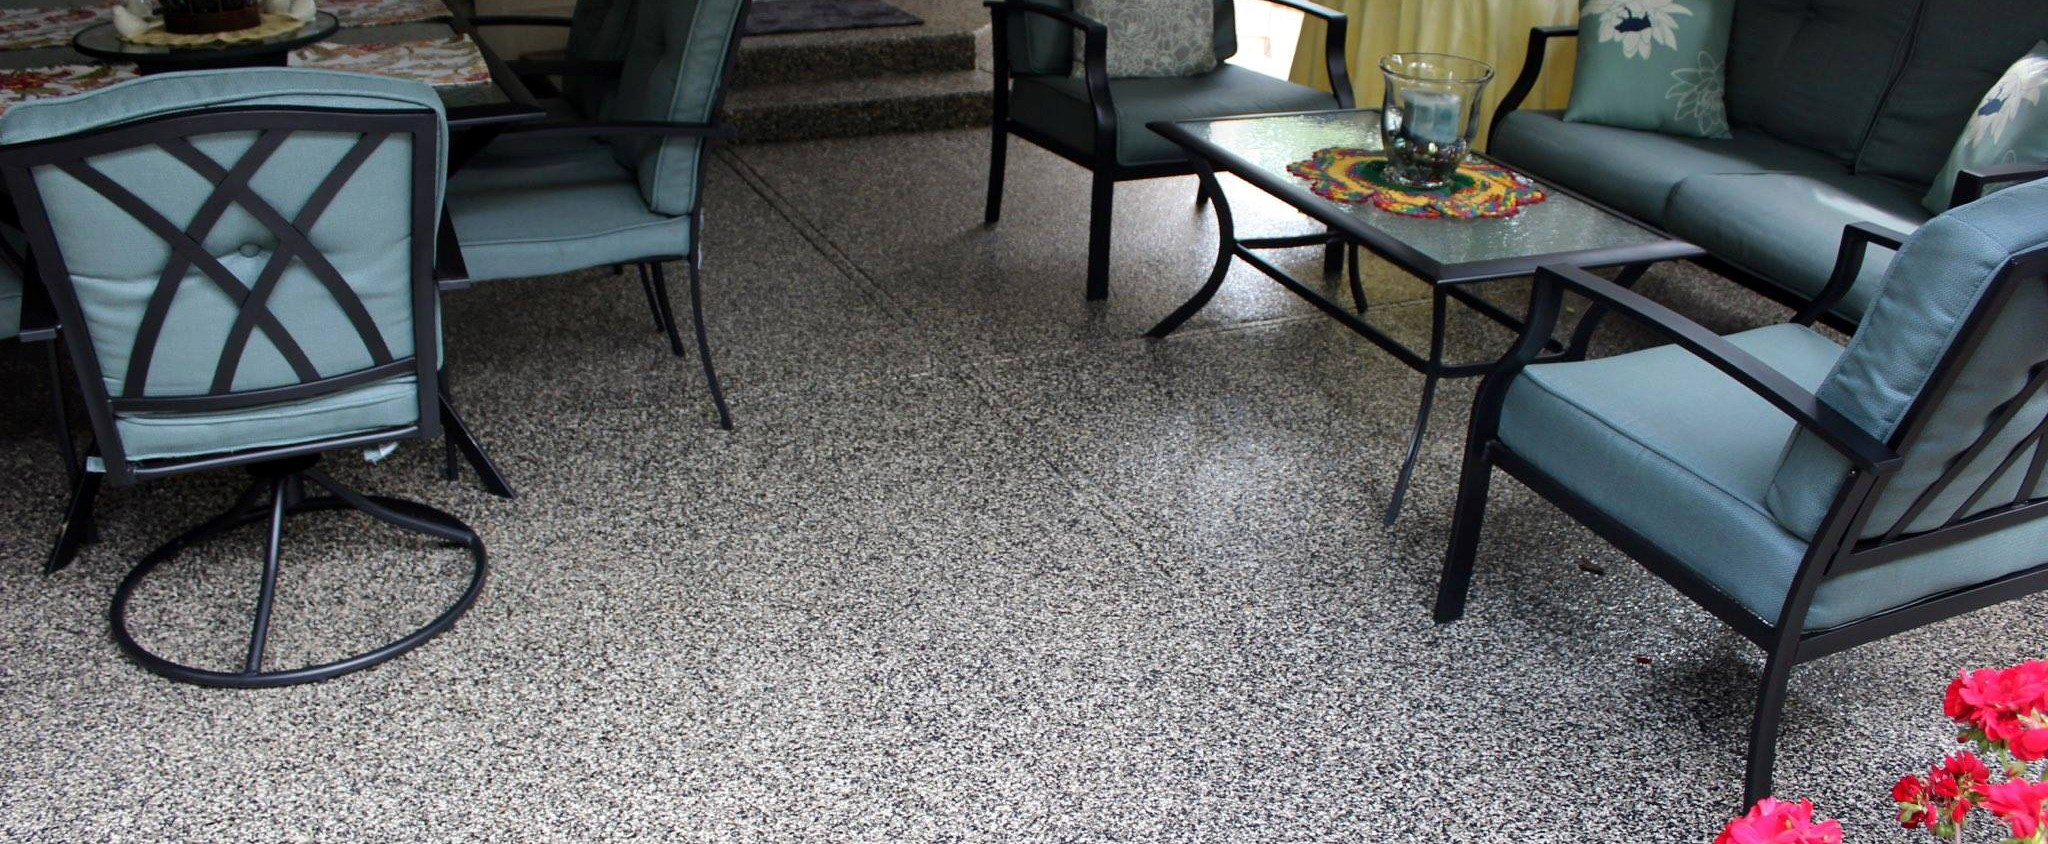 American Concrete Coatings reviews | 401 Crowley Rd - Arlington TX